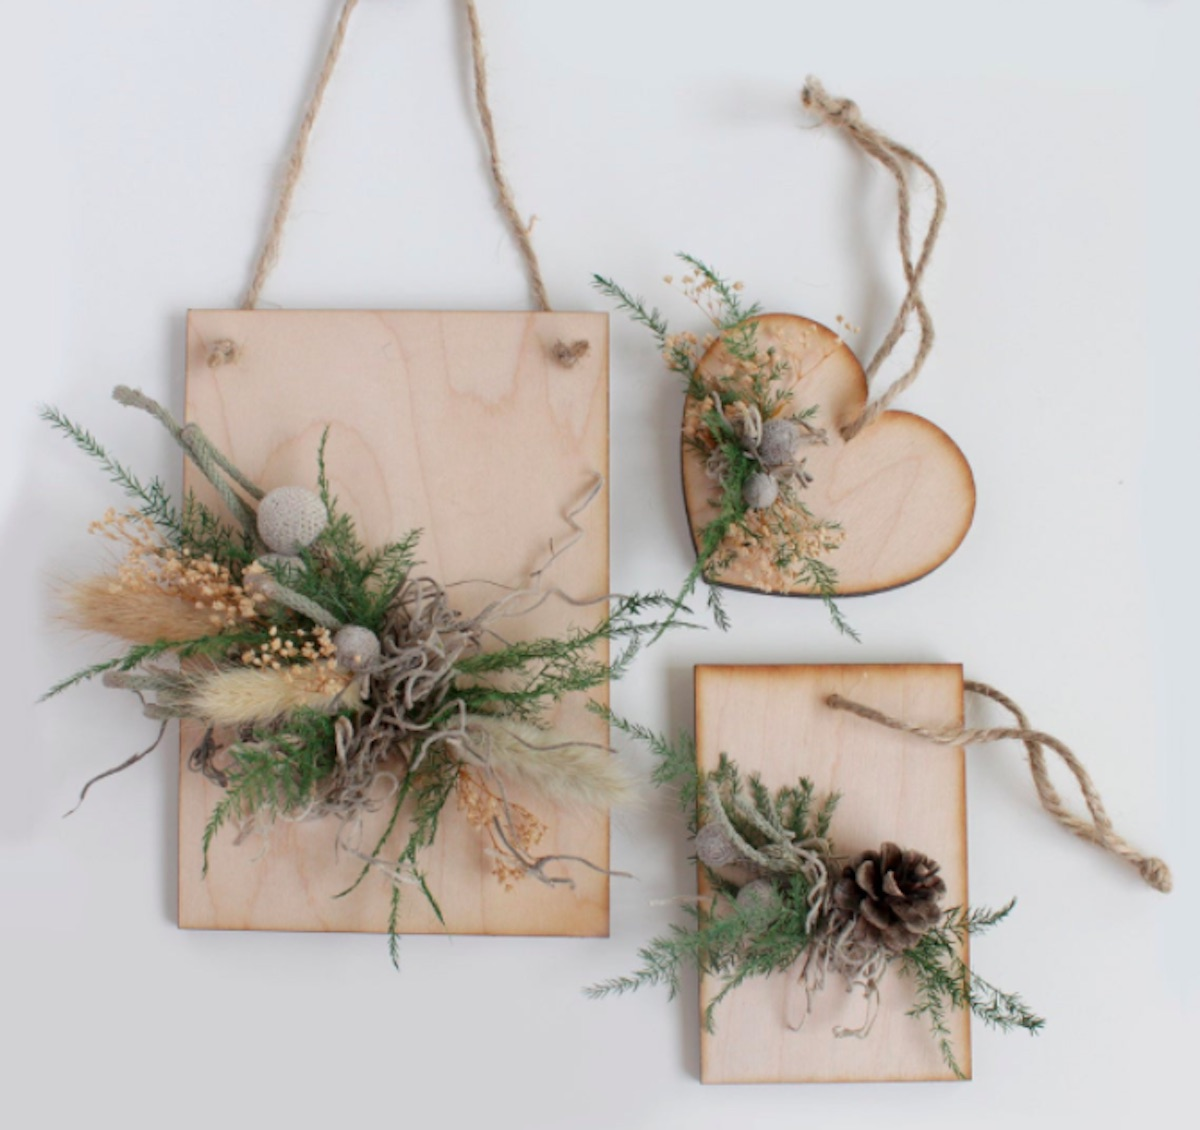 Etsy natural decor and ornaments, wood and dried flowers